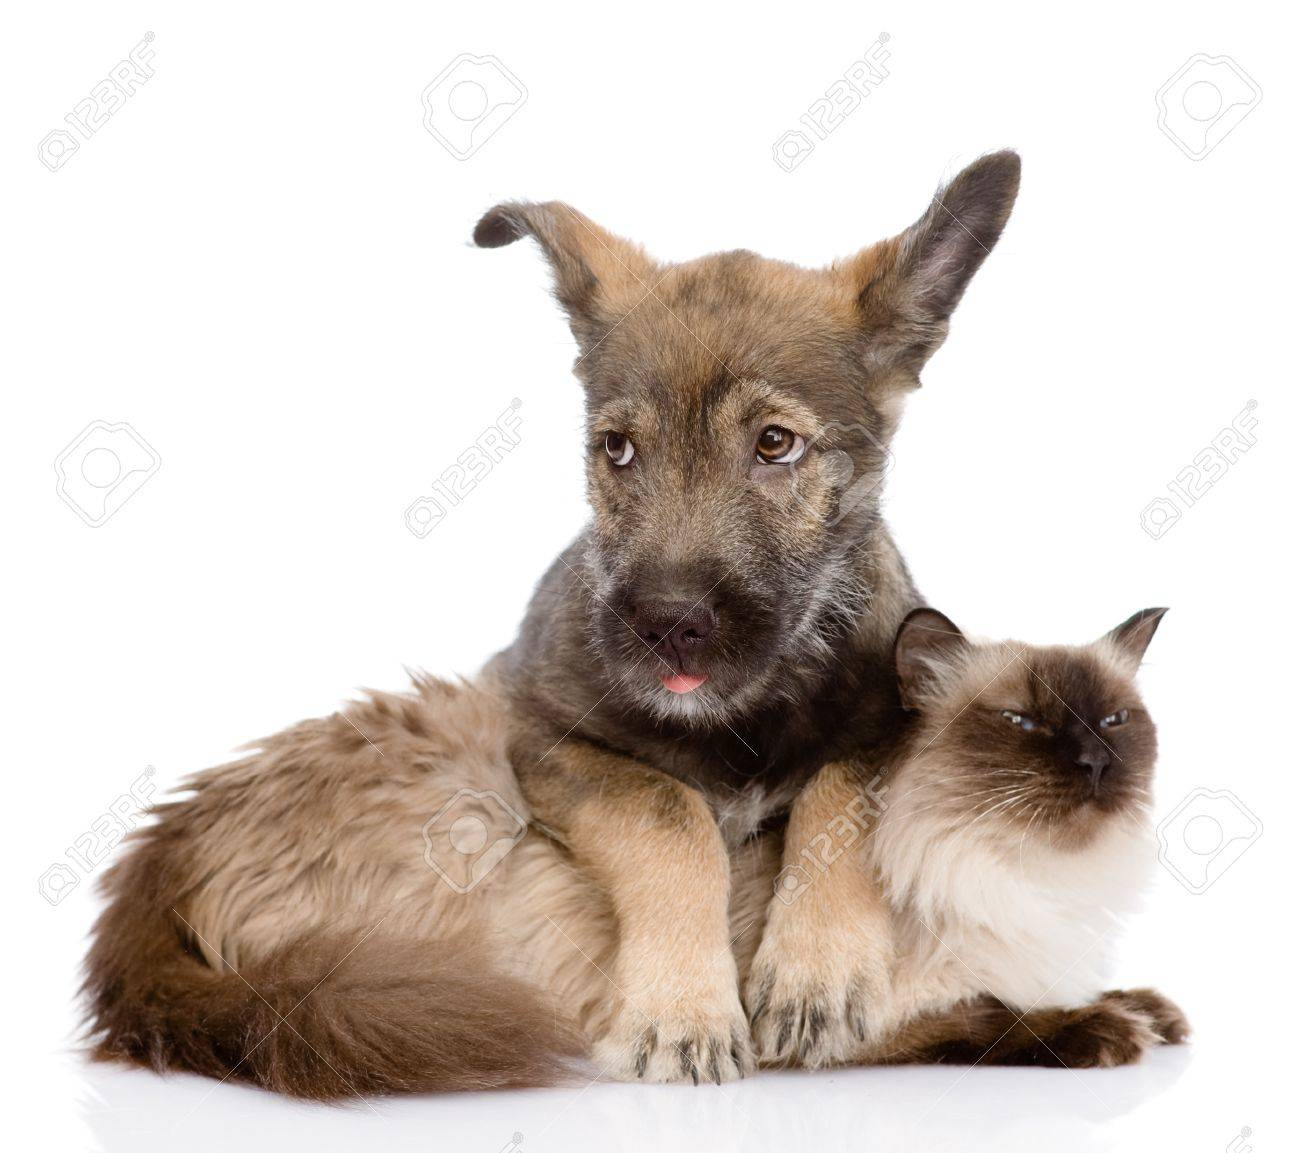 puppy and siamese cat together  isolated on white background Stock Photo - 21046077